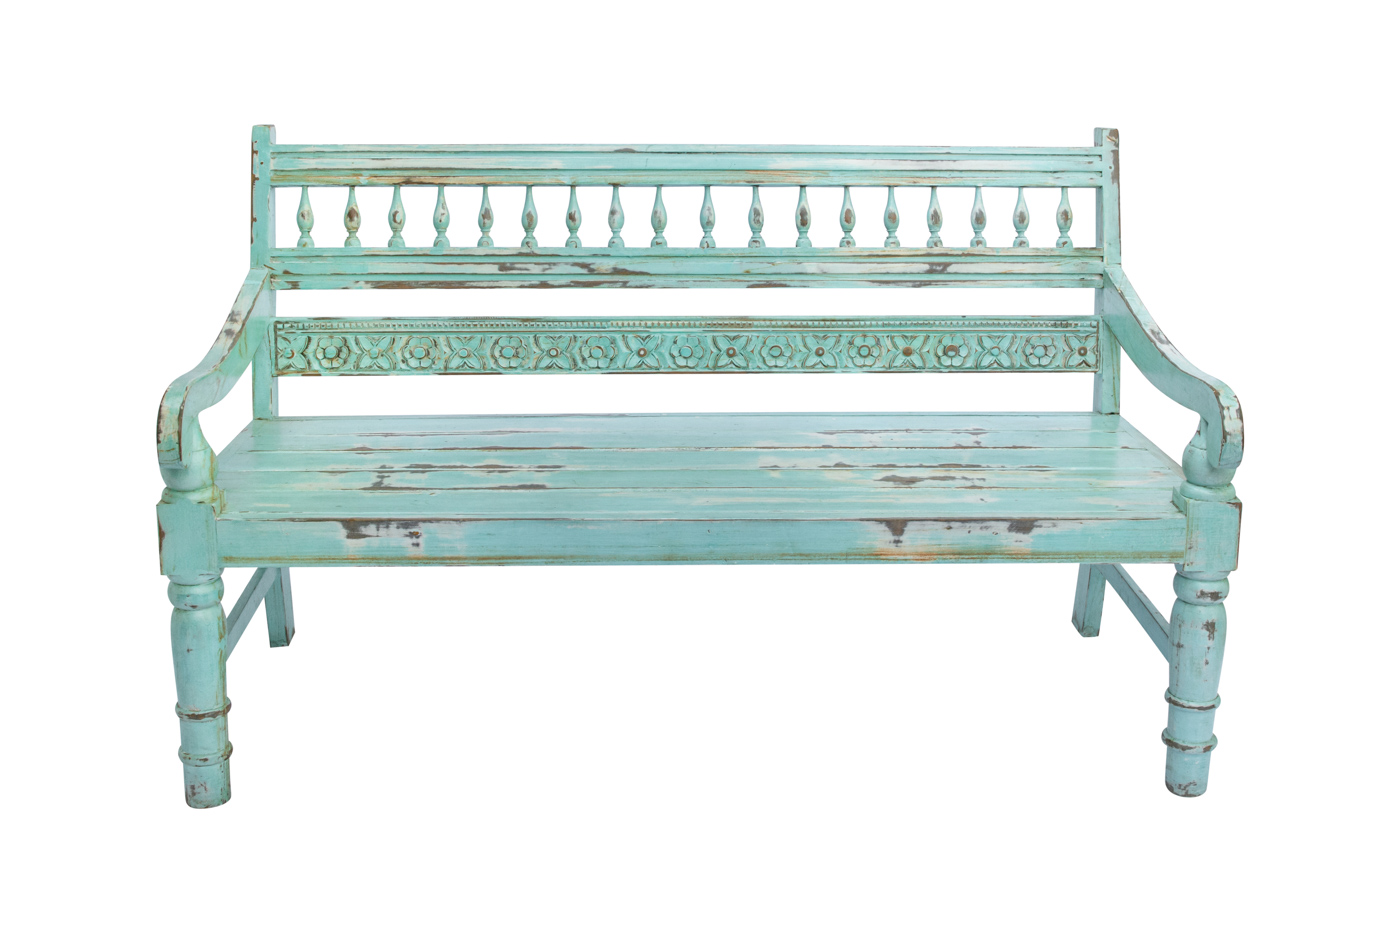 Balinese carved bench mint green, 91 Cm